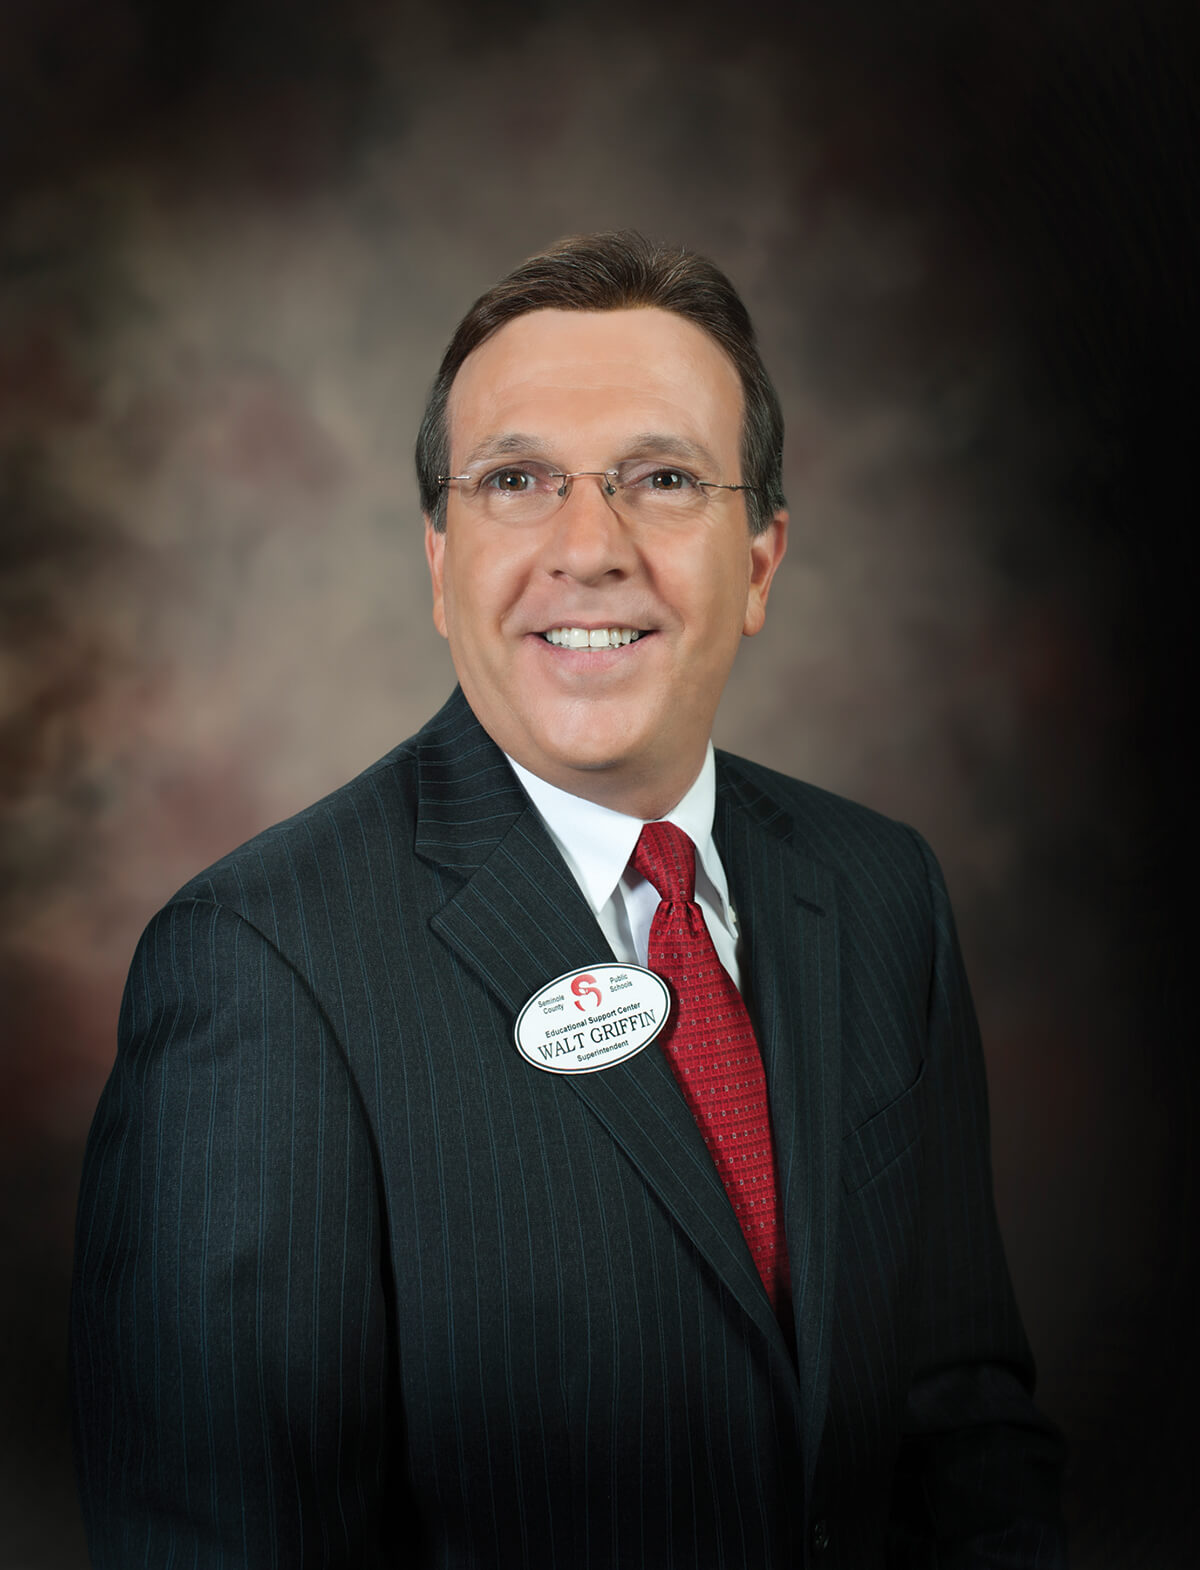 Dr. Walt Griffin, Superintendent of Seminole County Public Schools